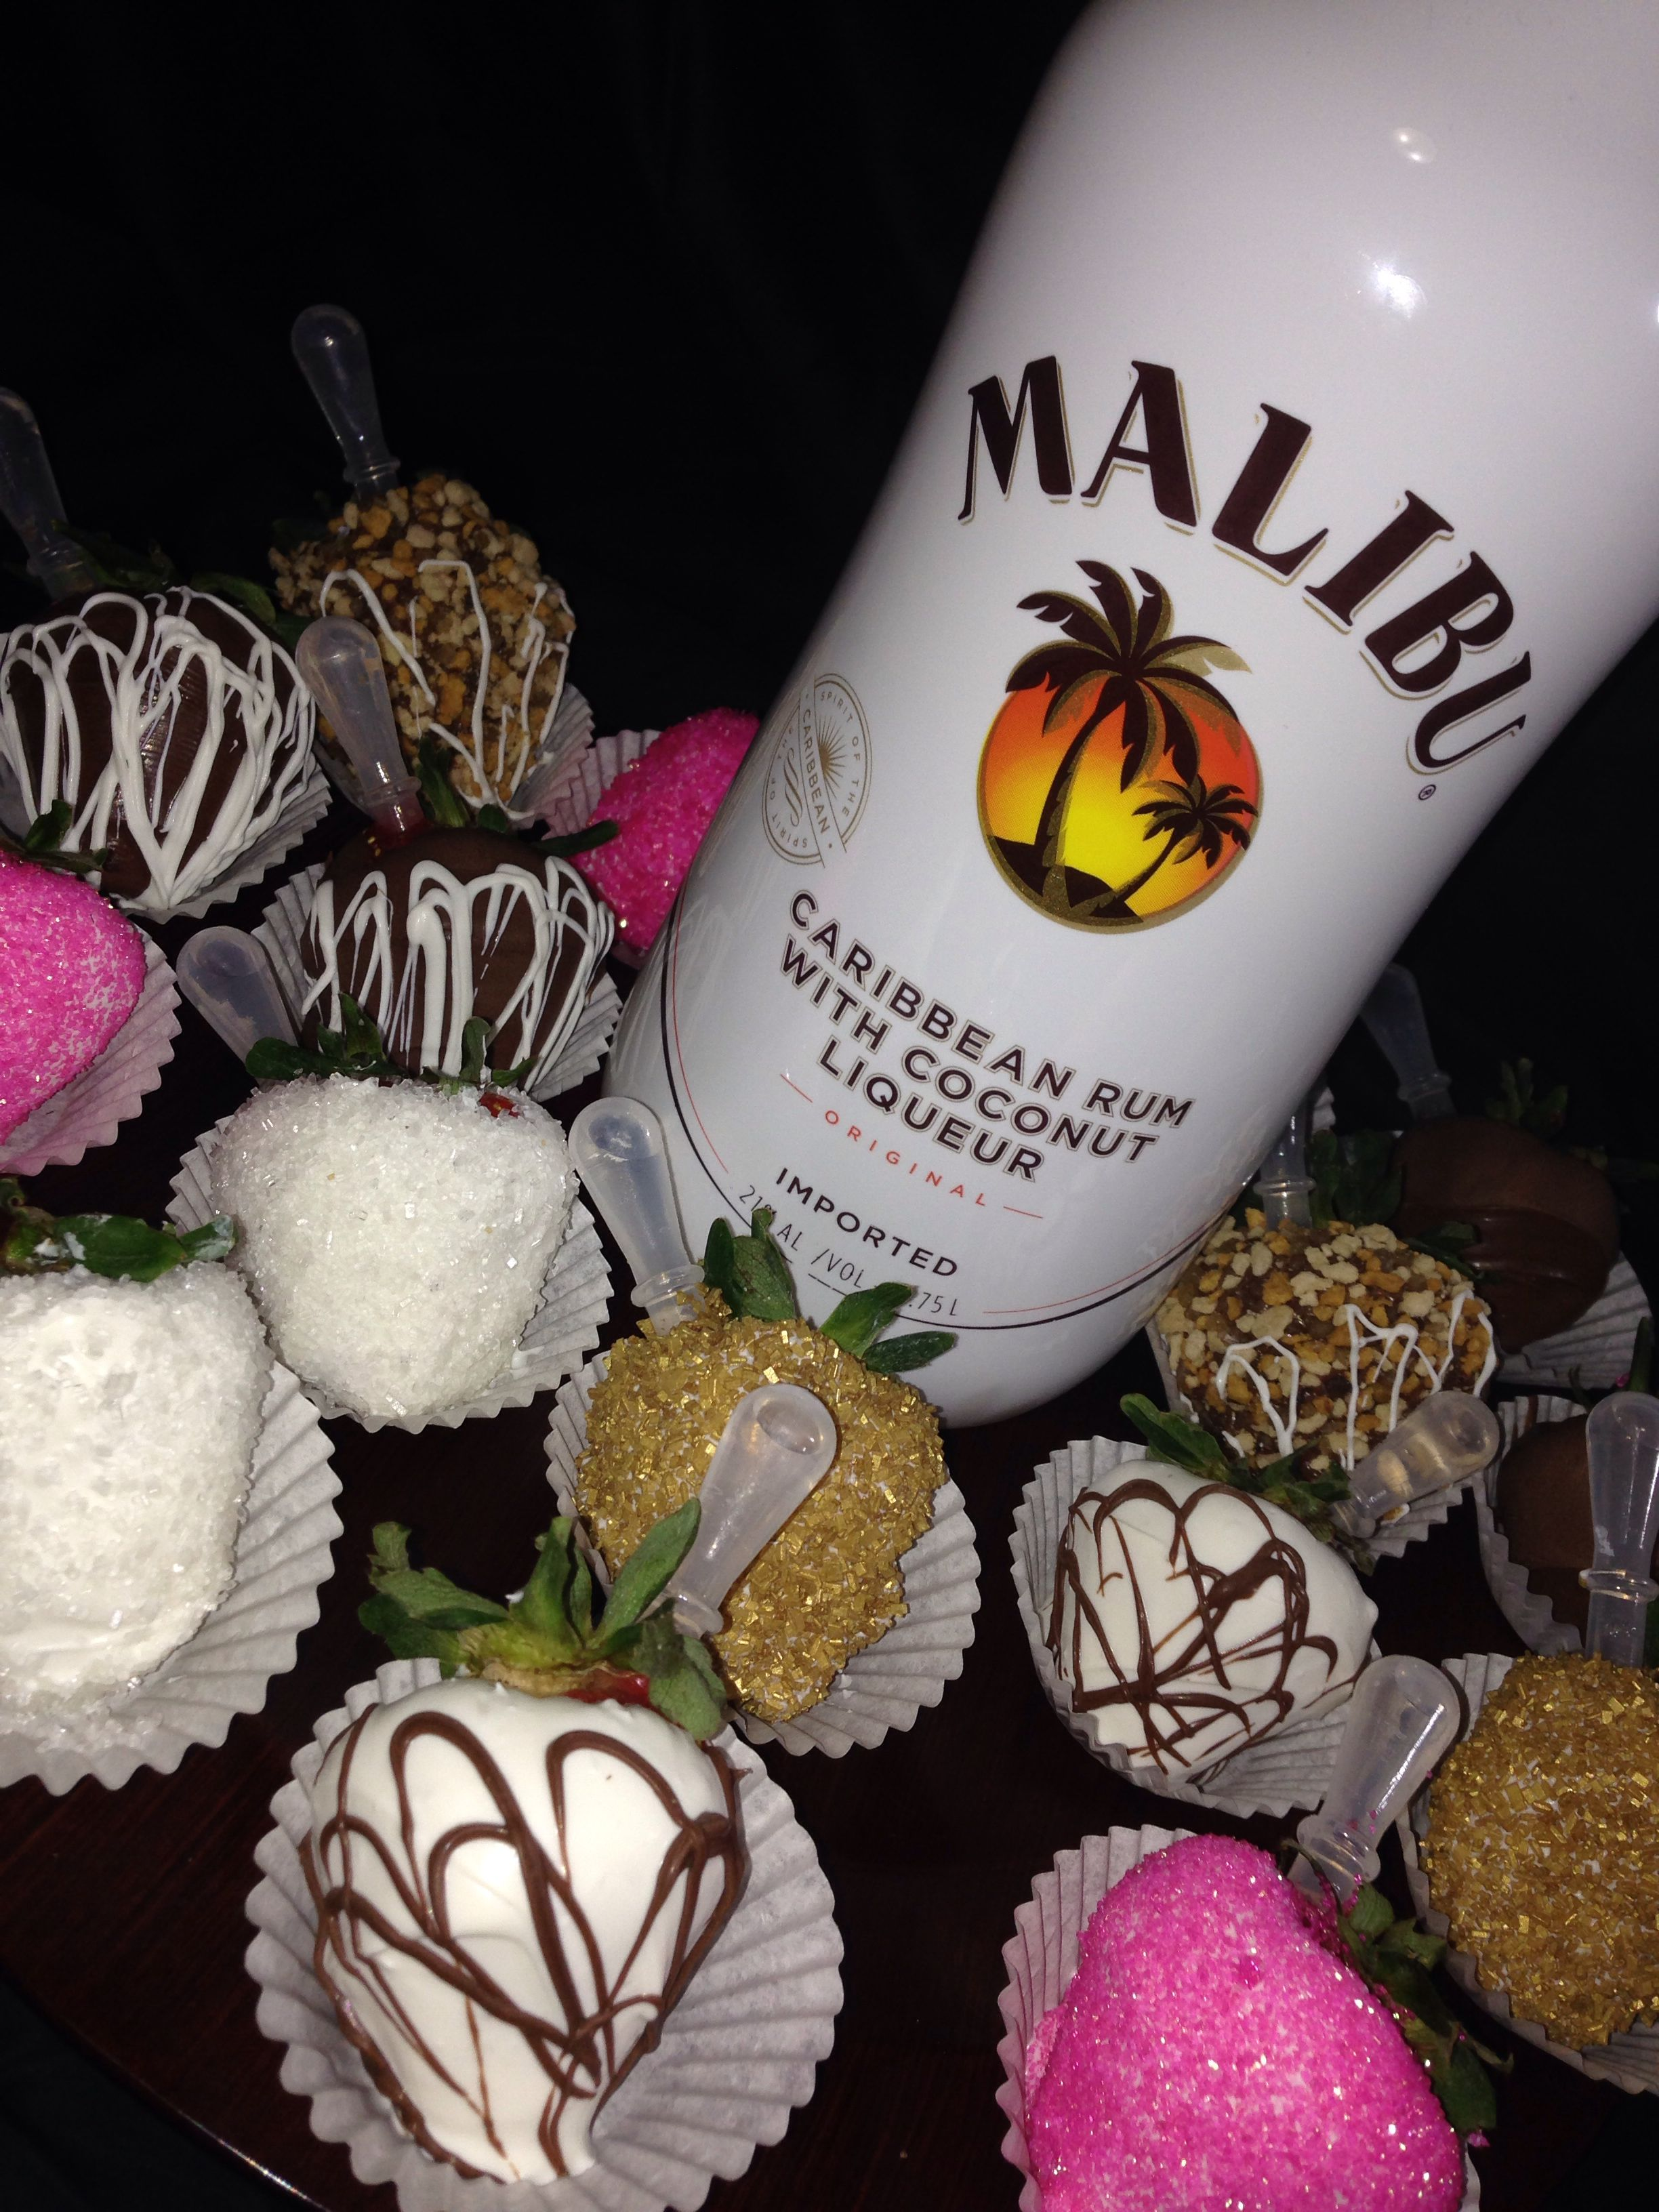 Gourmet Chocolate Covered Strawberries Infused with Malibu Rum